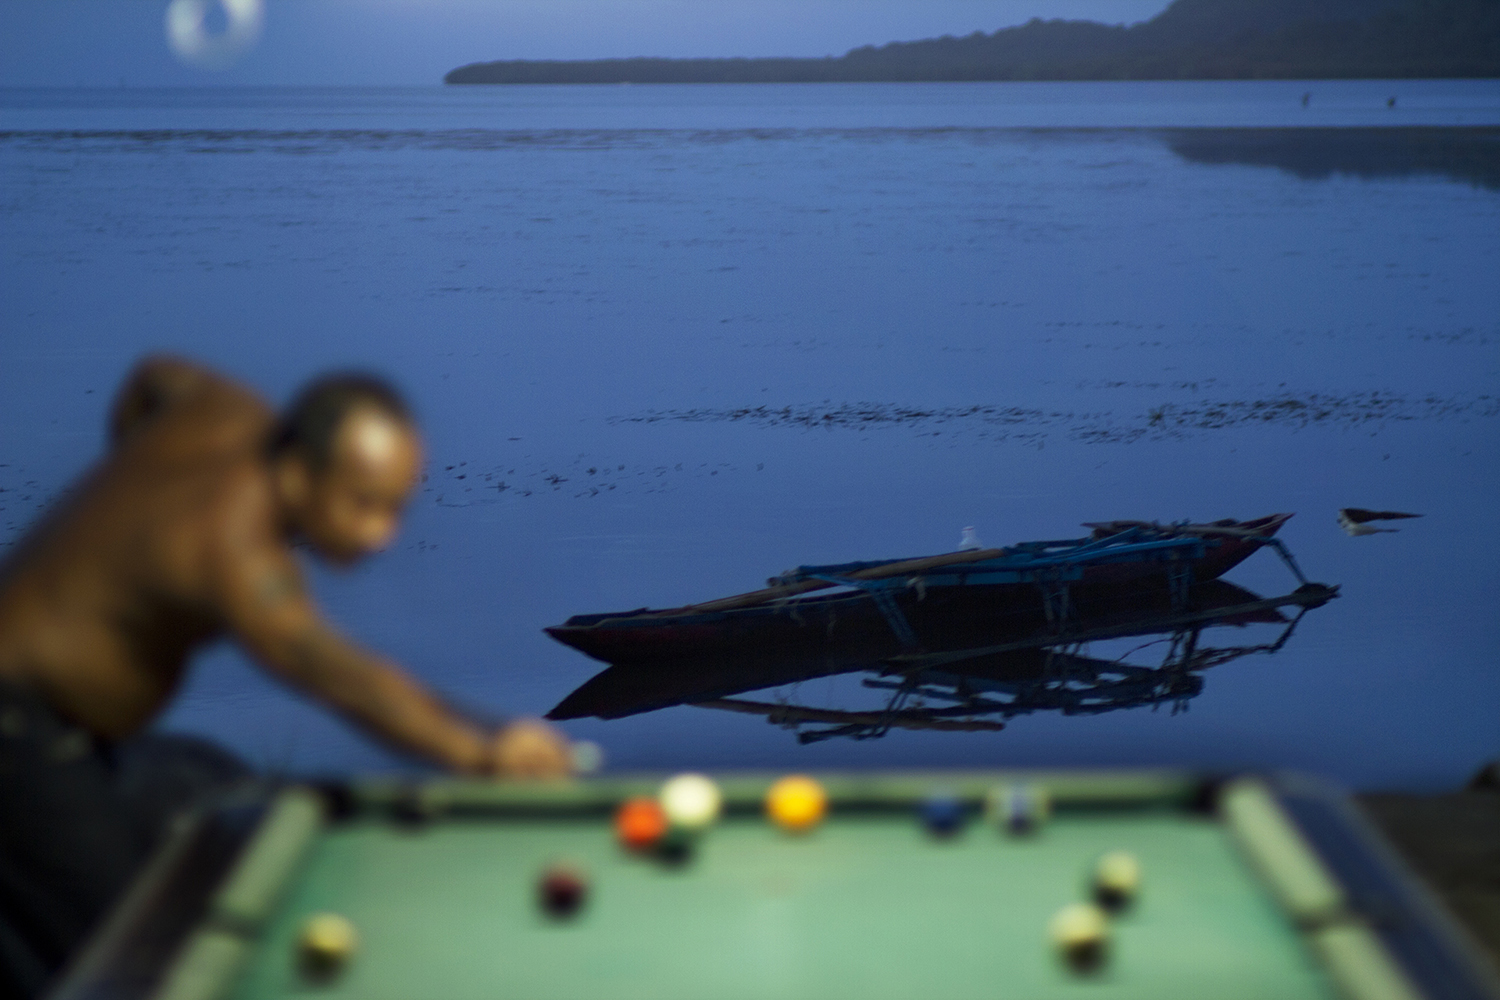 <p>Shooting pool at a house on the water in Nett.</p>